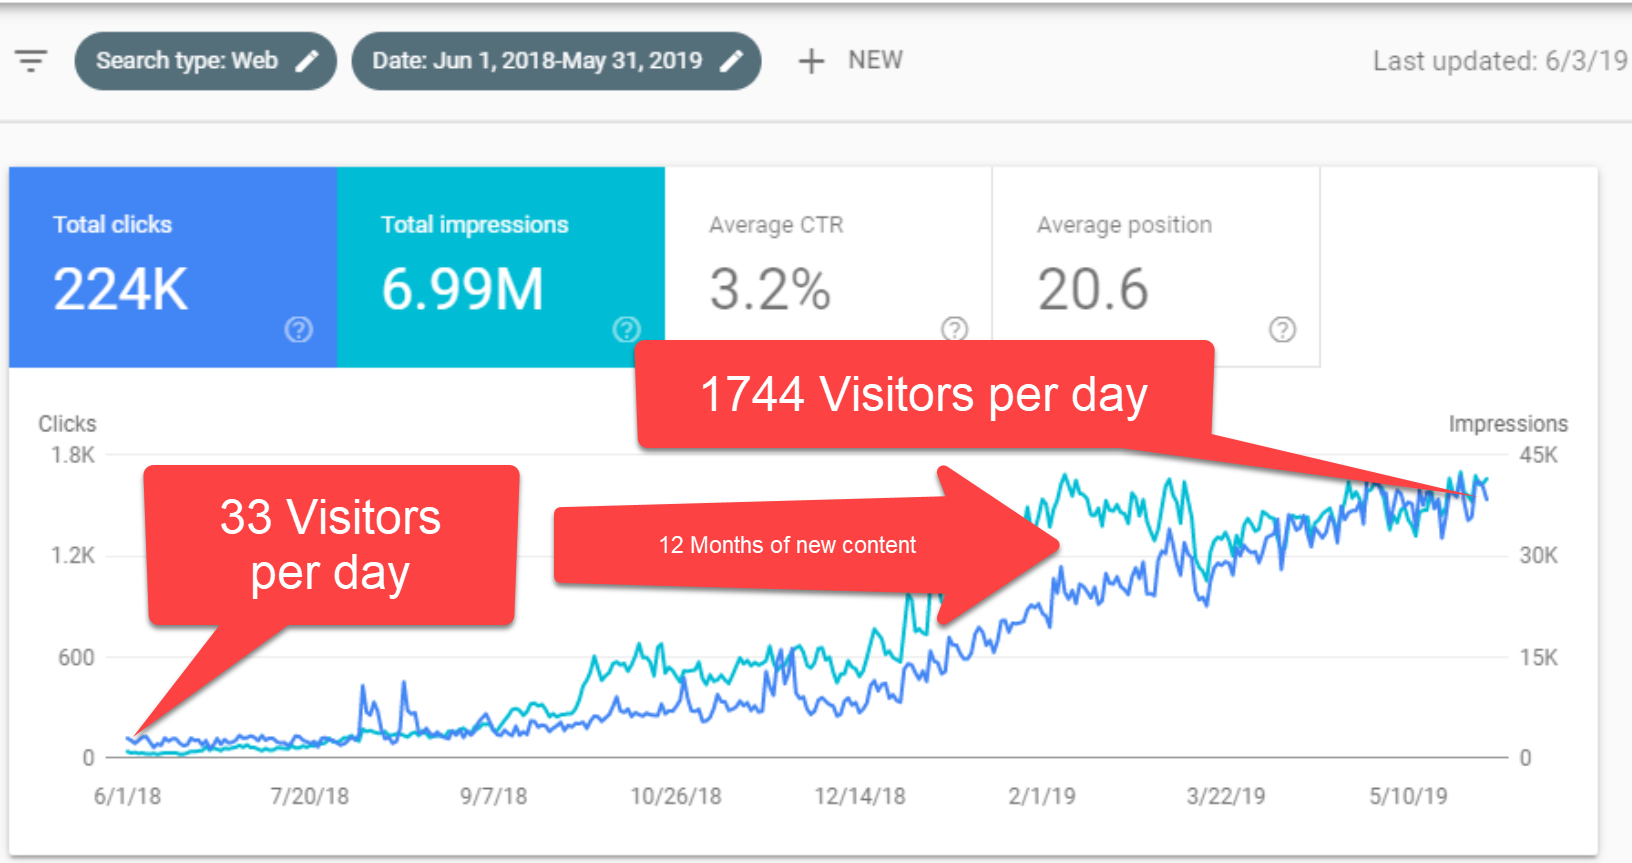 Content marketing case study shows 1100% increase in traffic over 10 months